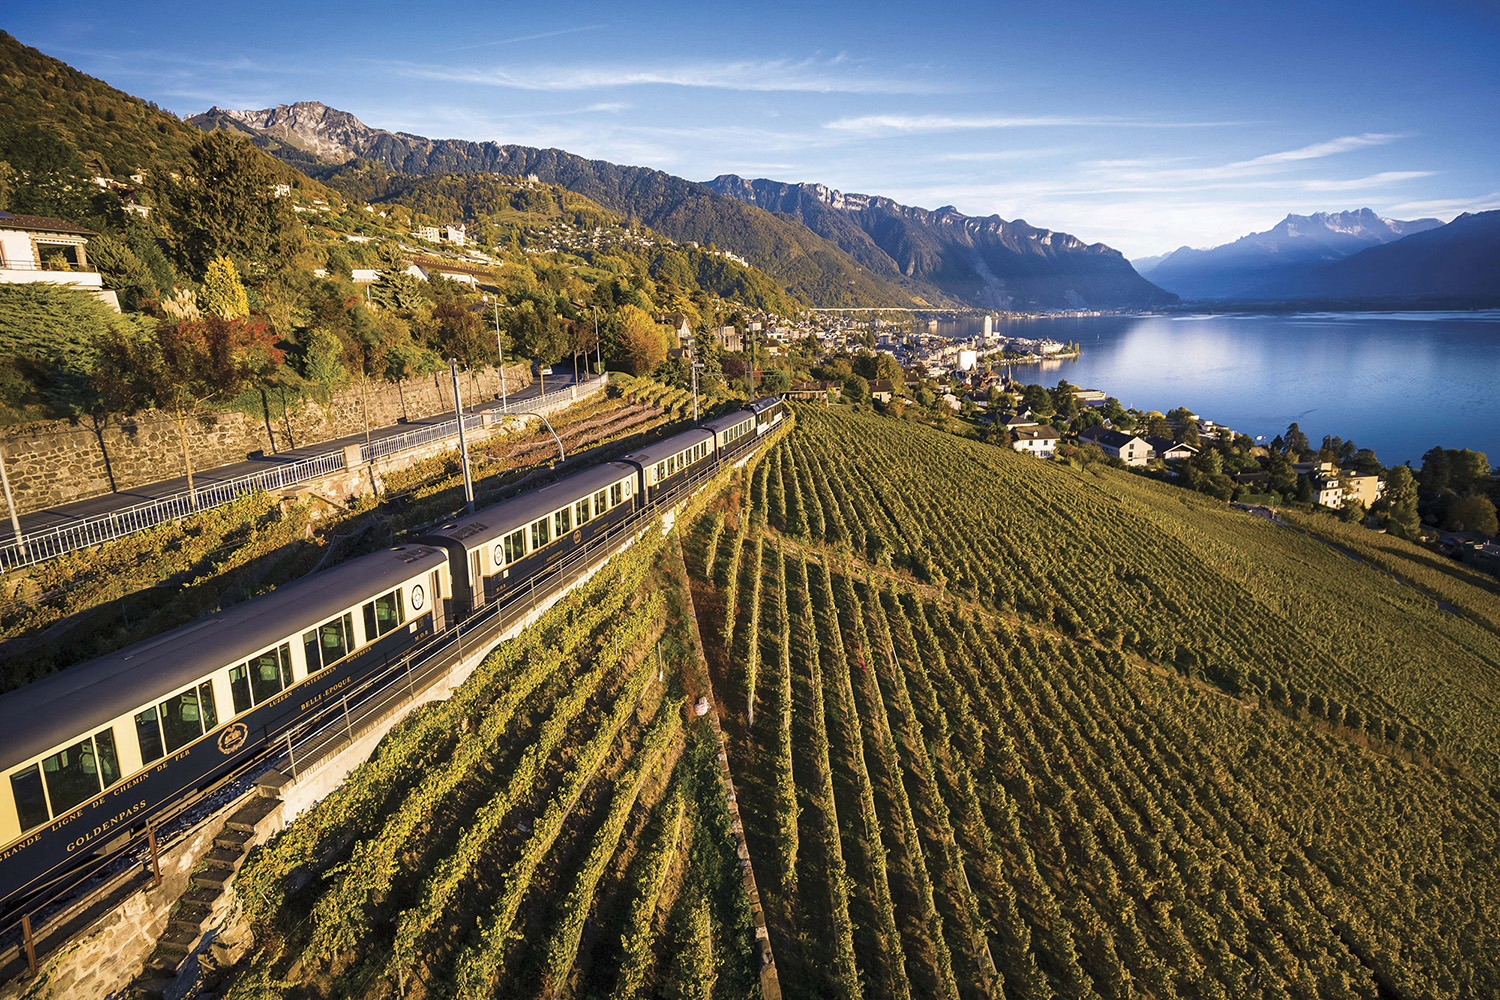 Chocolate train in Montreux-Berner, Switzerland